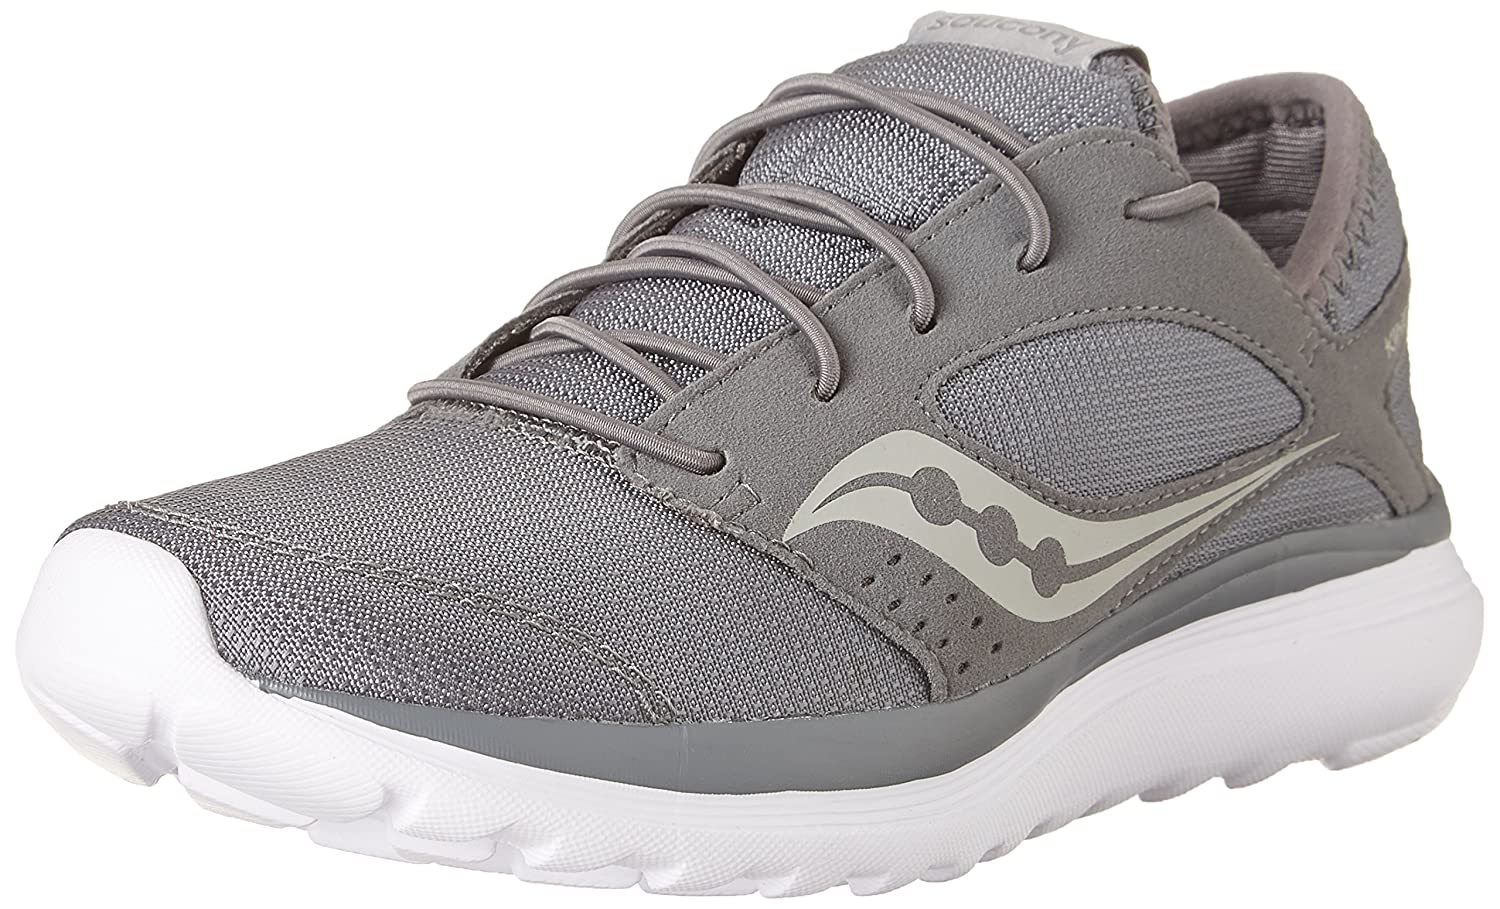 Saucony Women's Kineta Relay Running Shoe B01N6JMBL8 7.5 B(M) US|Grey